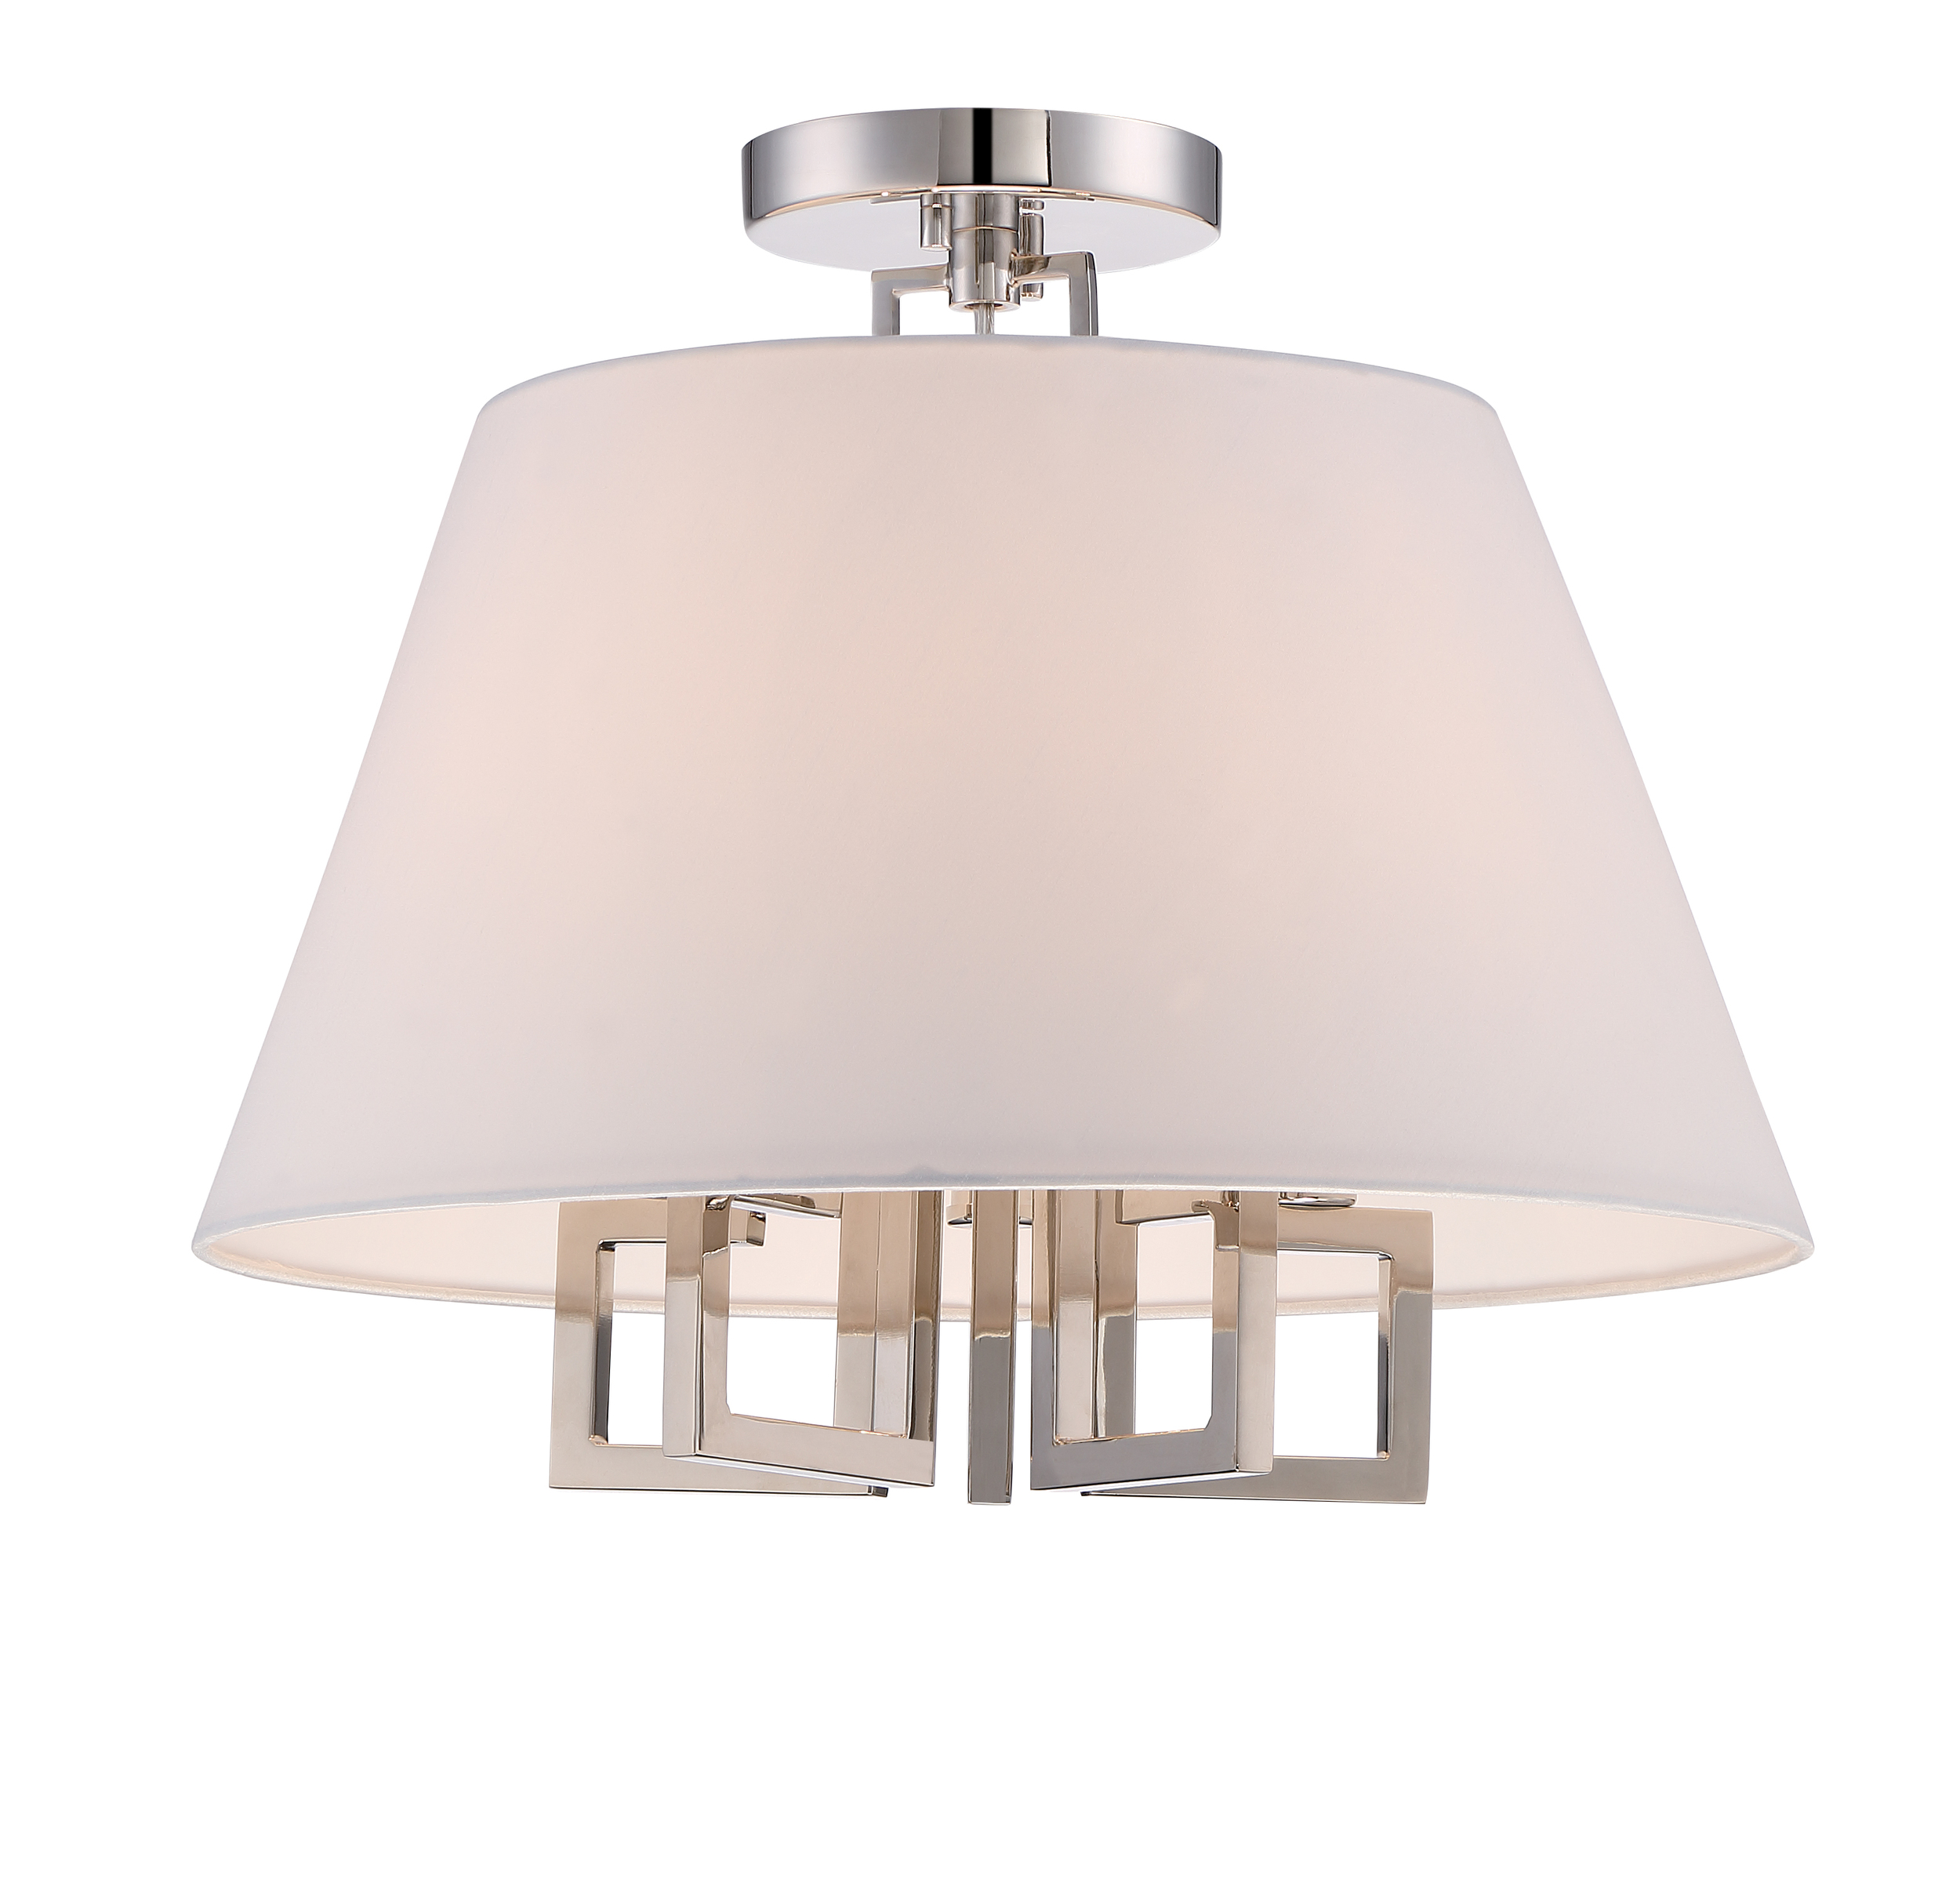 Westwood 5 Light Polished Nickel Ceiling Mount